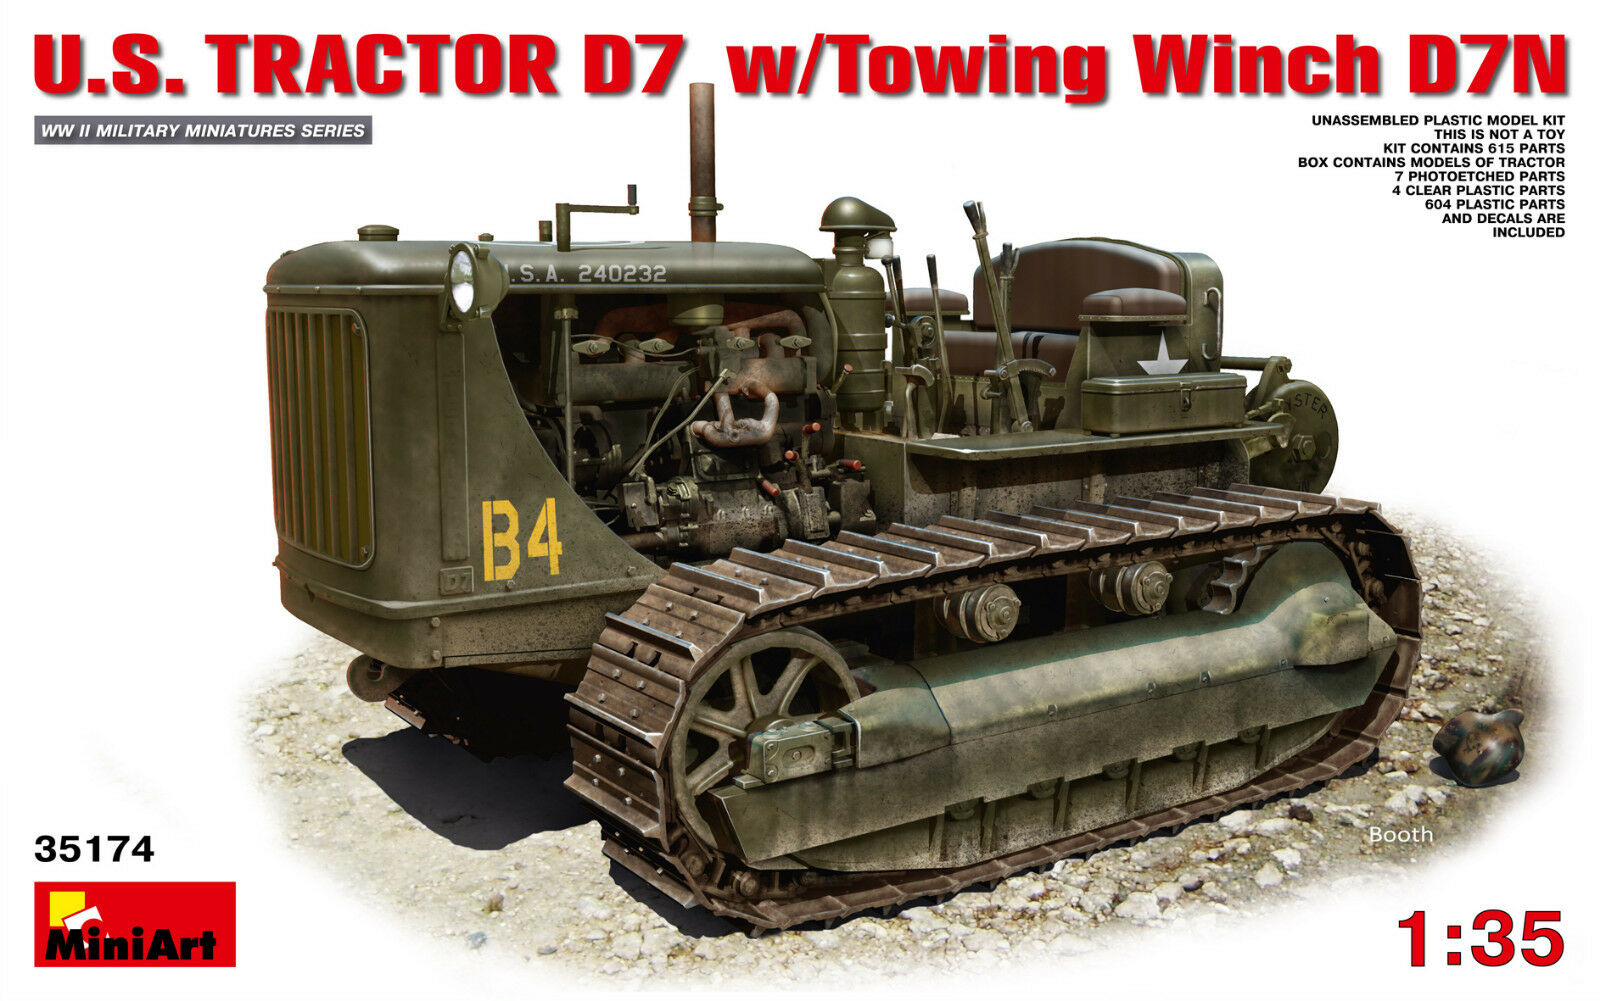 U.S. Tractor D7 w Towing Winch D7N  1 35 MiniArt